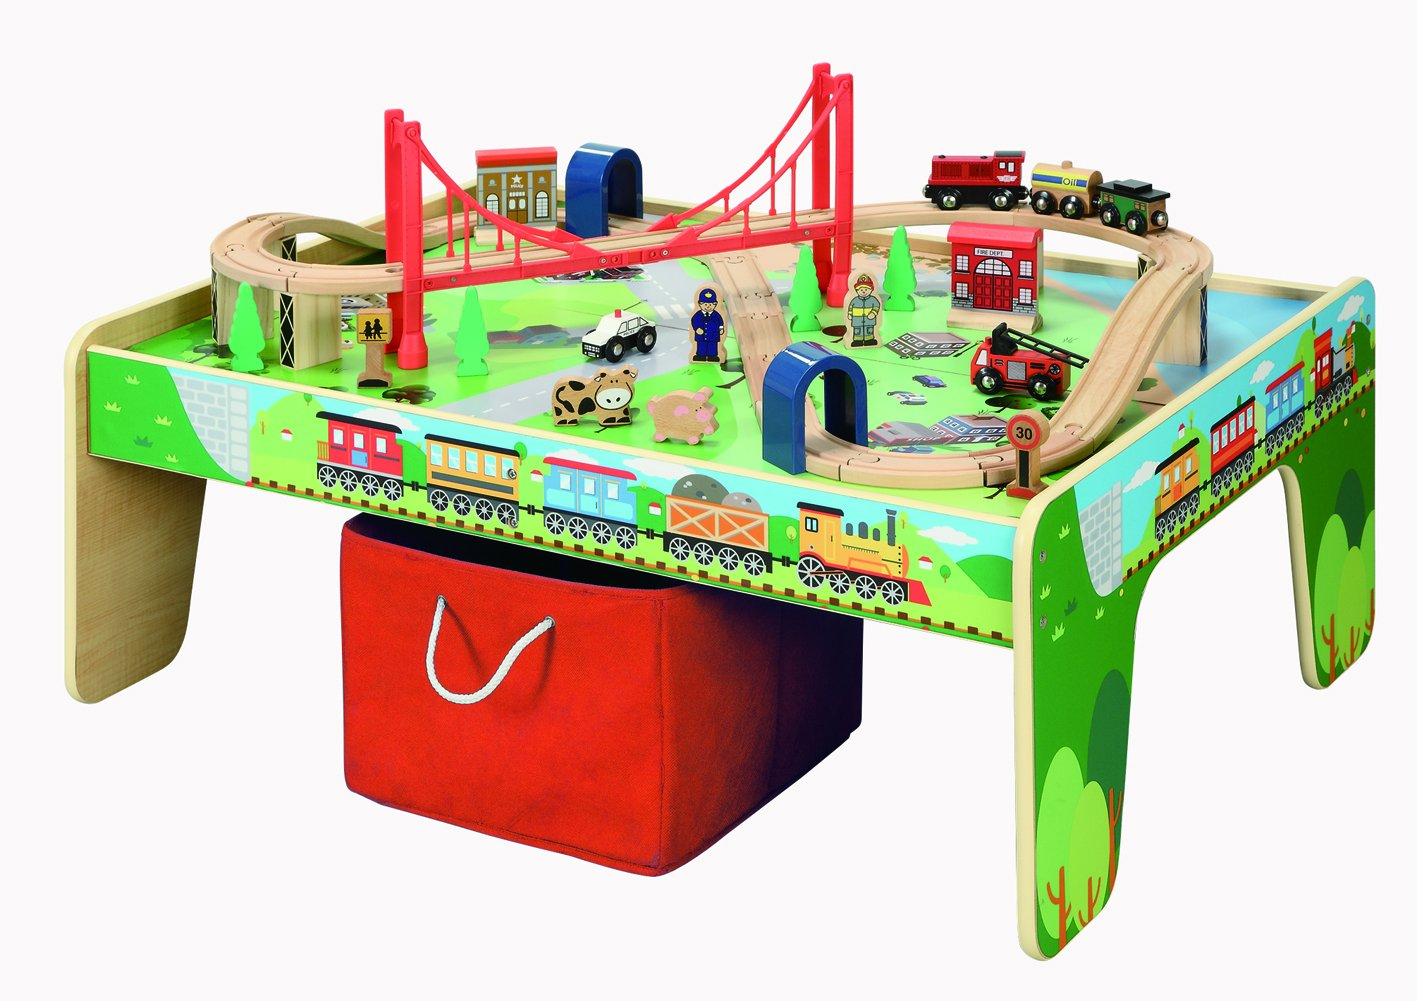 50 piece Train Set with Train / Play Table - BRIO and Thomas & Friends Compatible by Maxim Enterprise INC